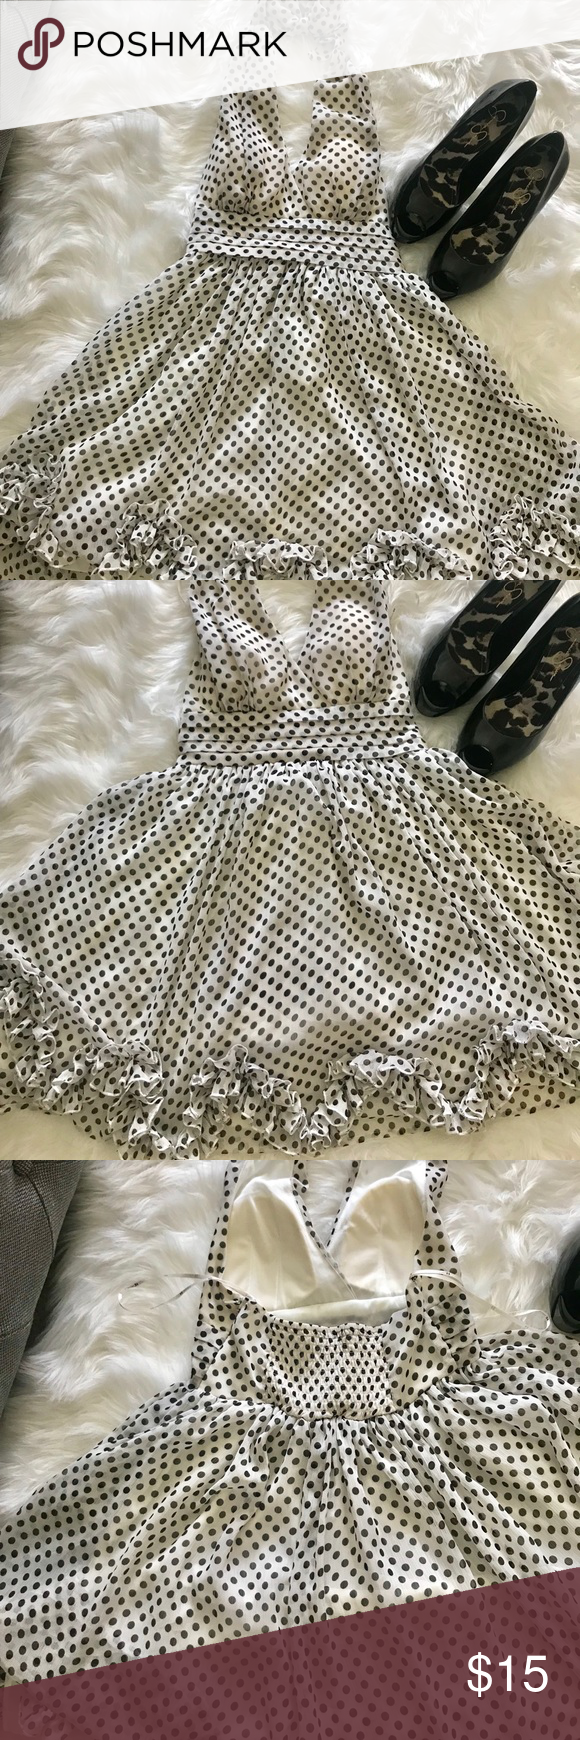 Cute  party/ cocktail dress Black and off white Polkadot halter dress.. cute for that special occasion.  This dress comes with cups in the breast area. The dress is a small but runs big ( fits like a medium) Forever 21 Dresses Backless #backlesscocktaildress